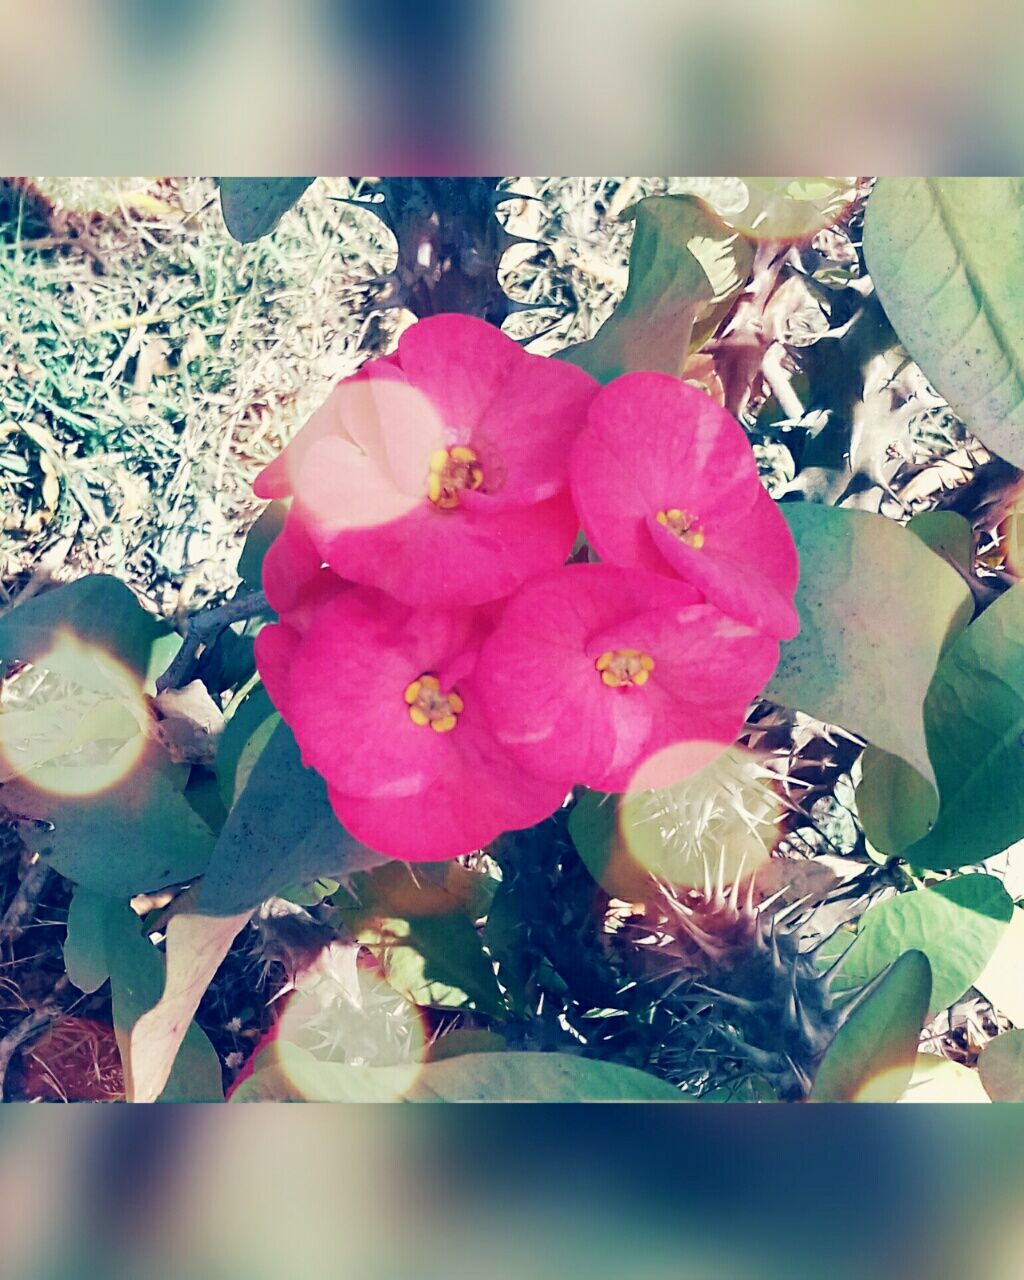 flower, petal, nature, flower head, leaf, rose - flower, fragility, beauty in nature, freshness, no people, indoors, day, close-up